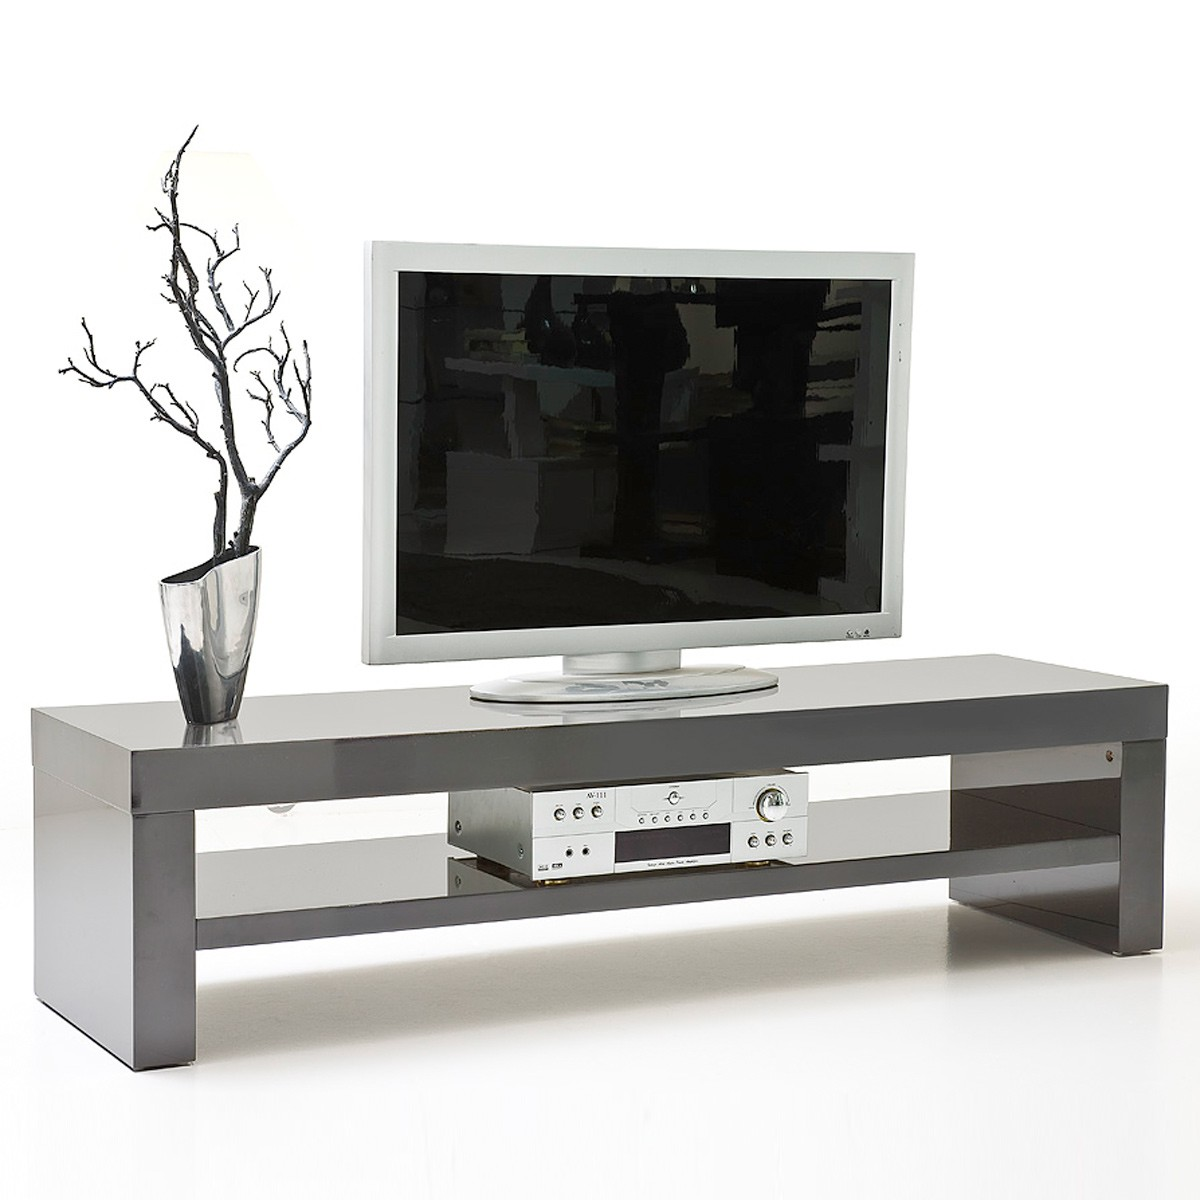 tv lowboard grau best tvlowboard tvboard eiche nbgrau with tv lowboard grau good full size of. Black Bedroom Furniture Sets. Home Design Ideas